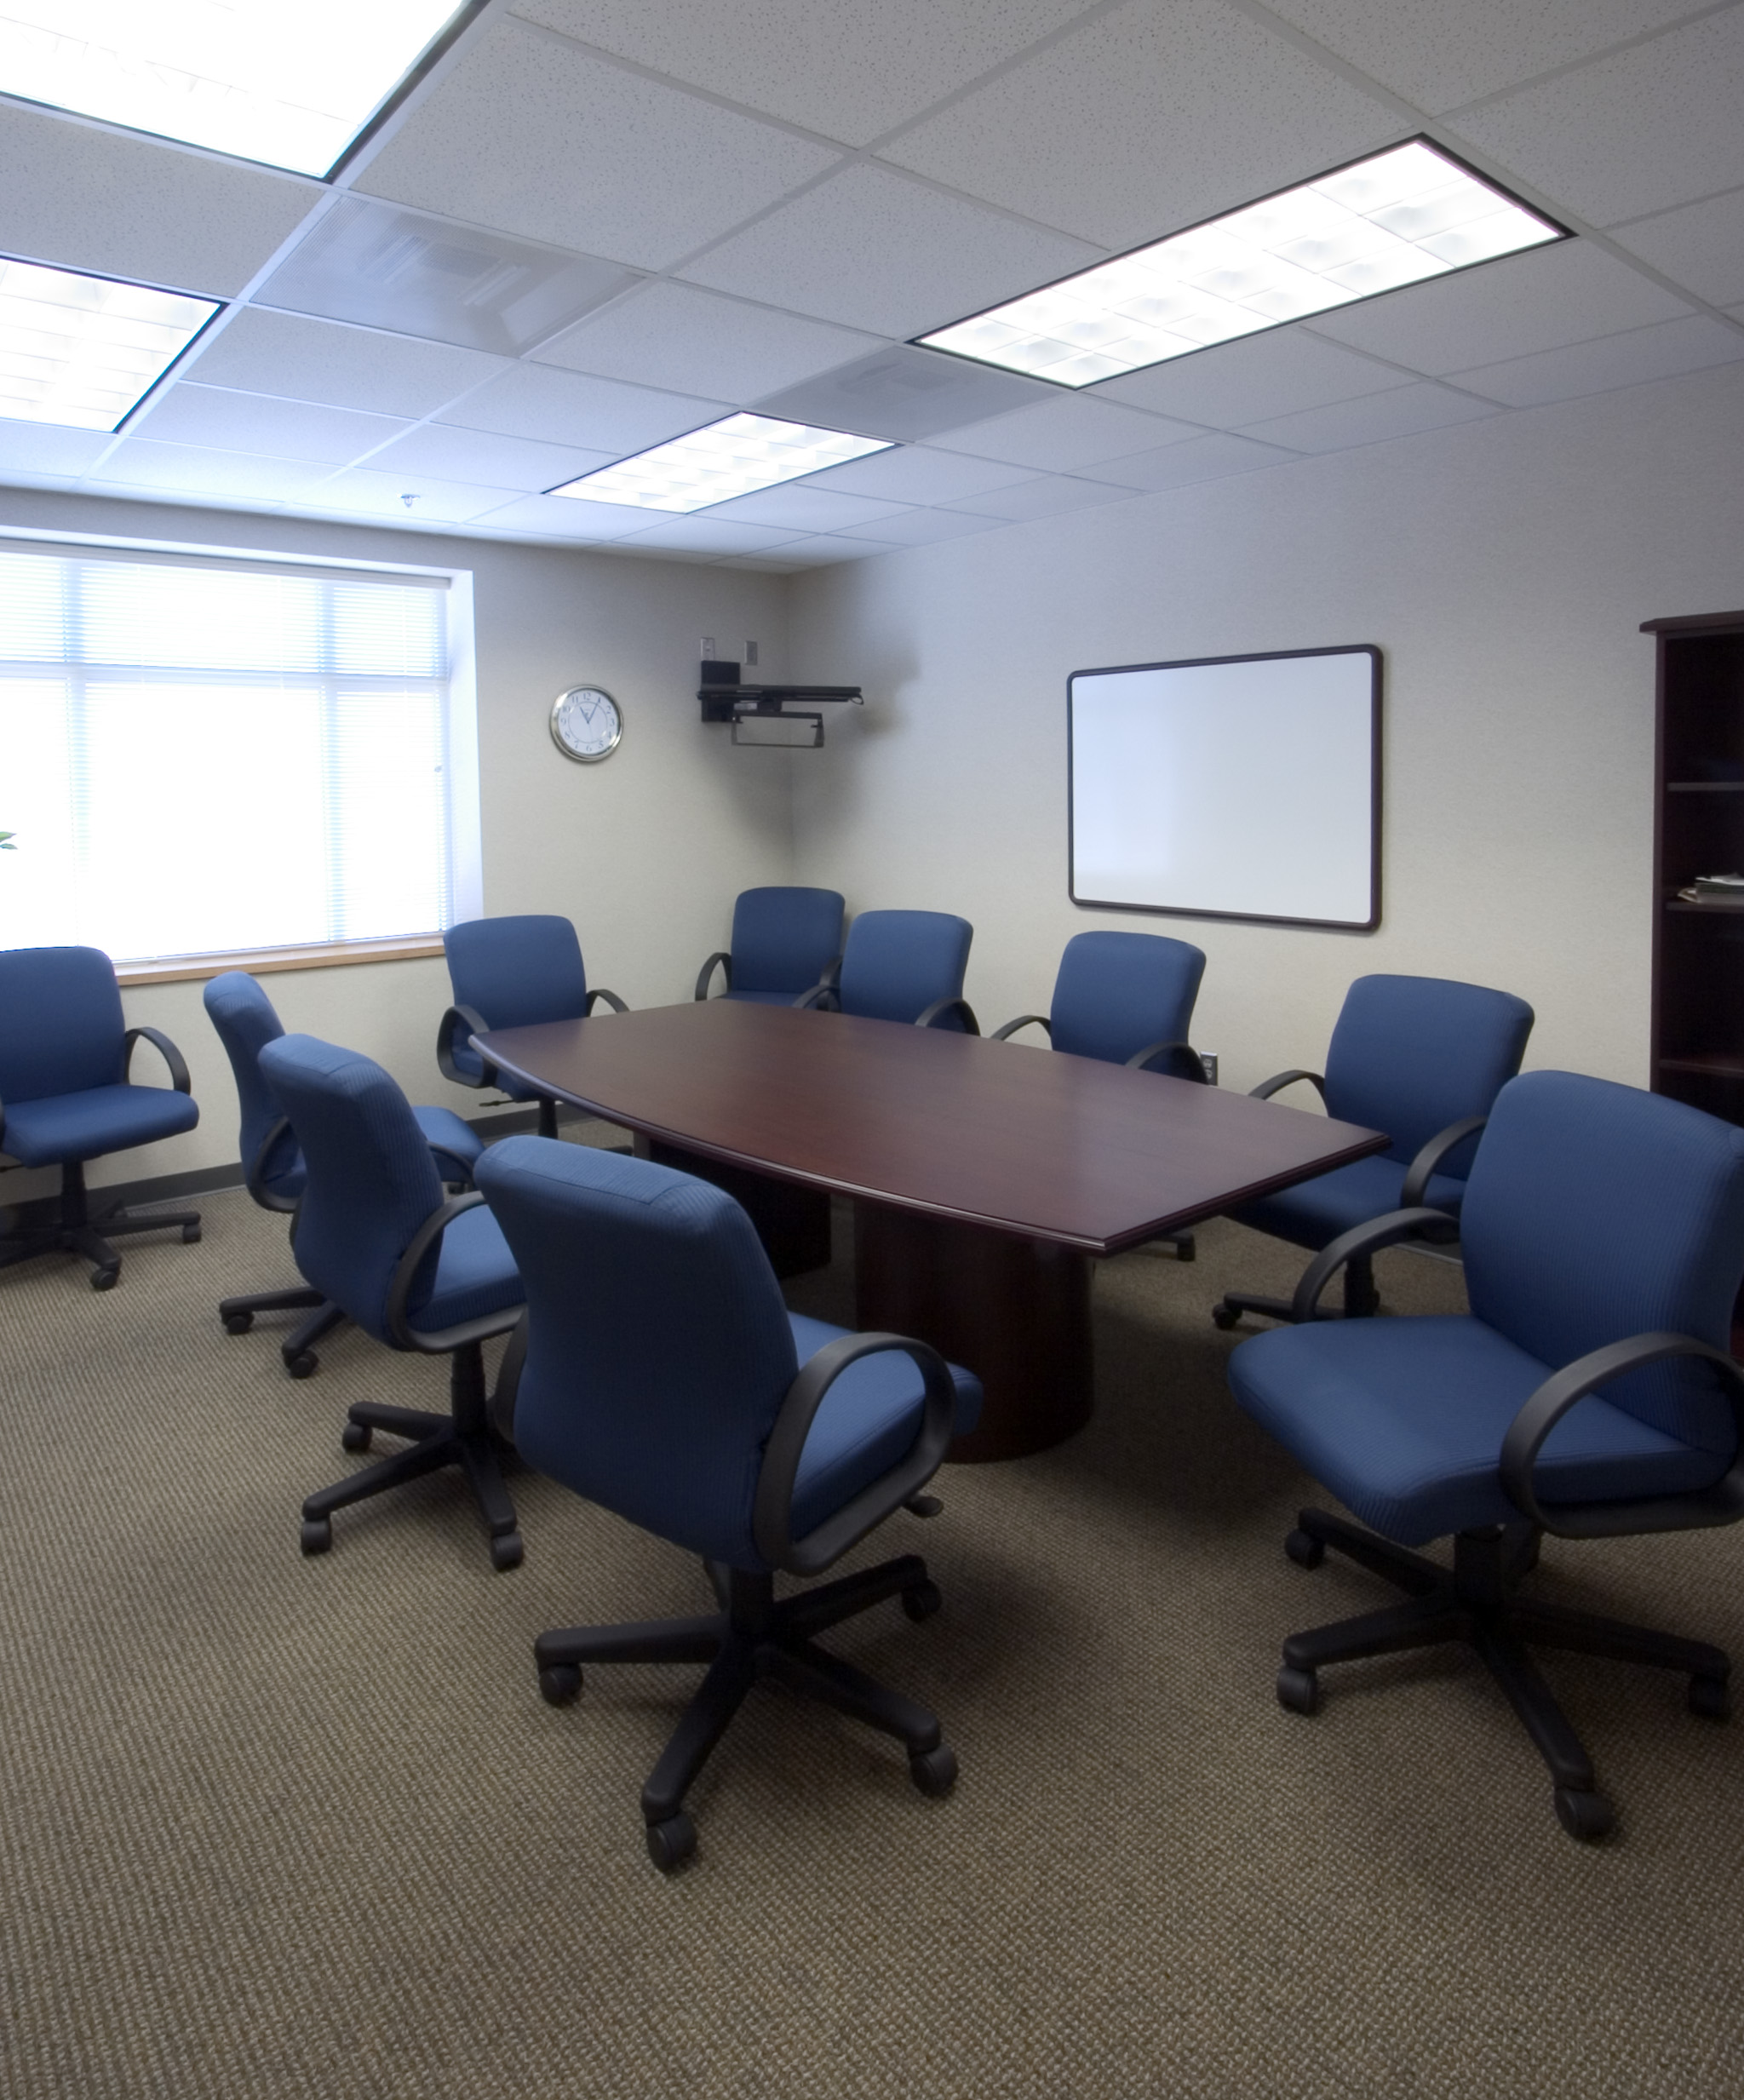 Chairs surround conference table